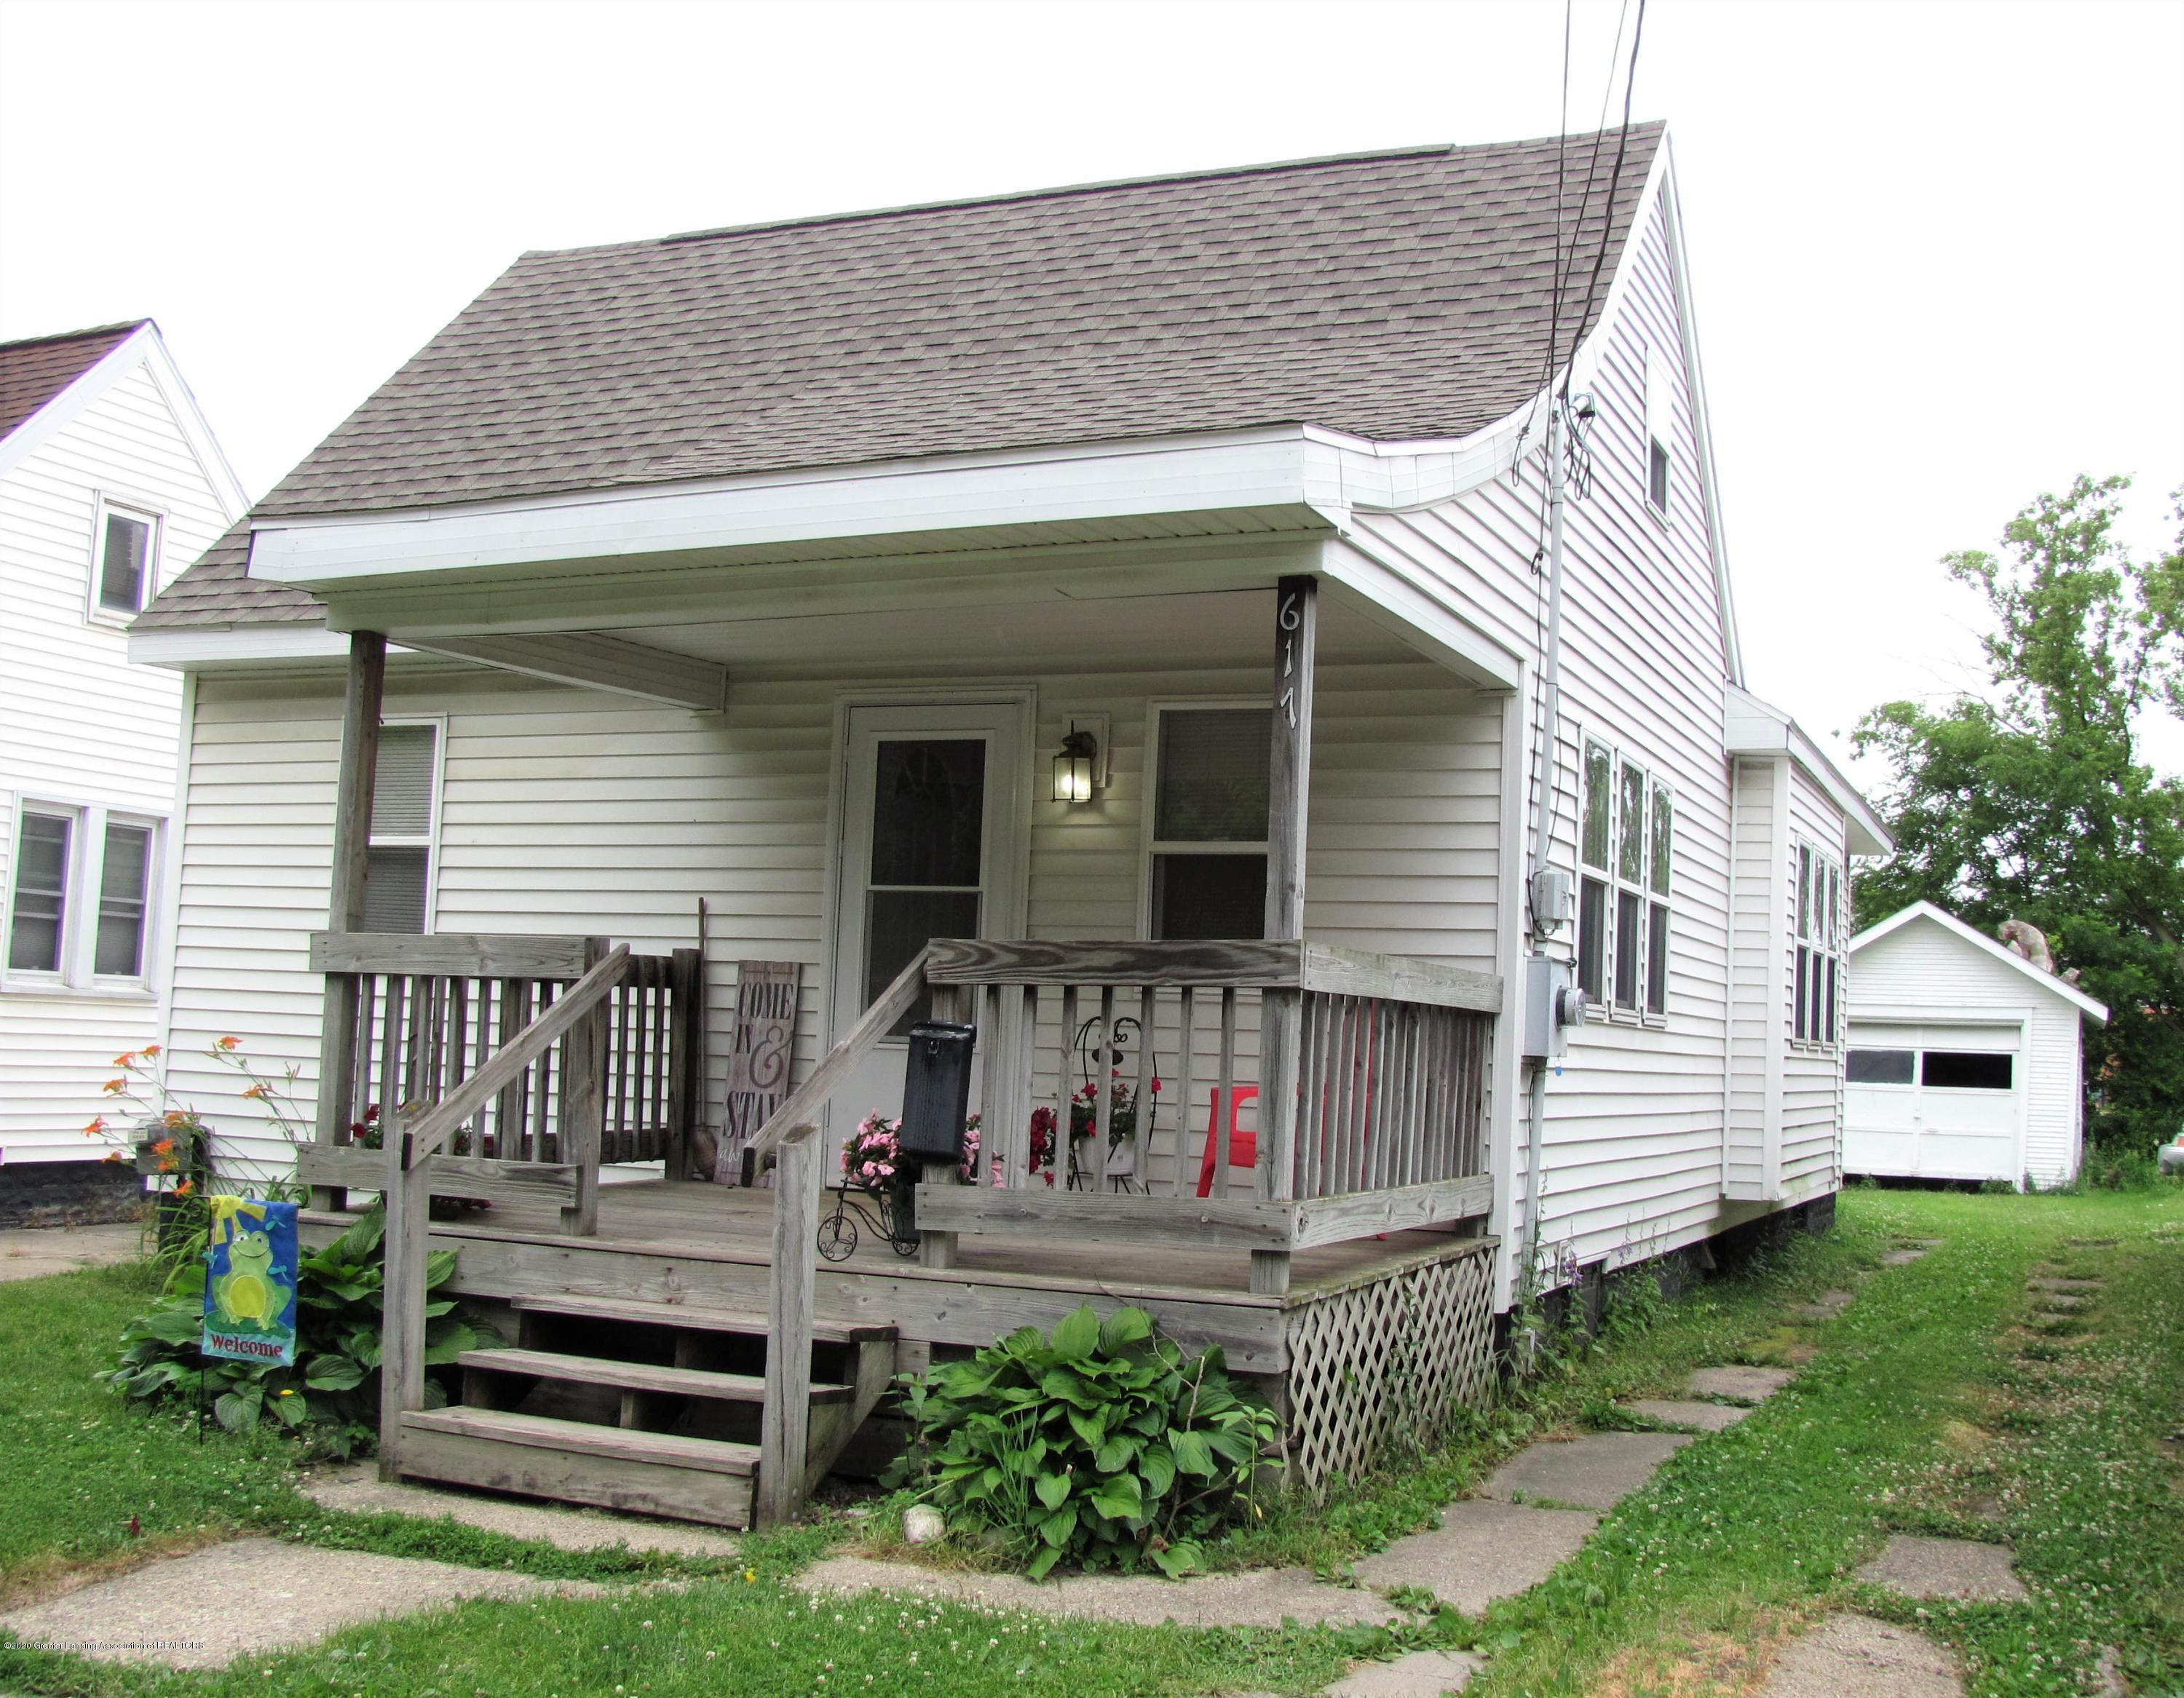 617 N Clemens Ave - IMG_2500 - 1